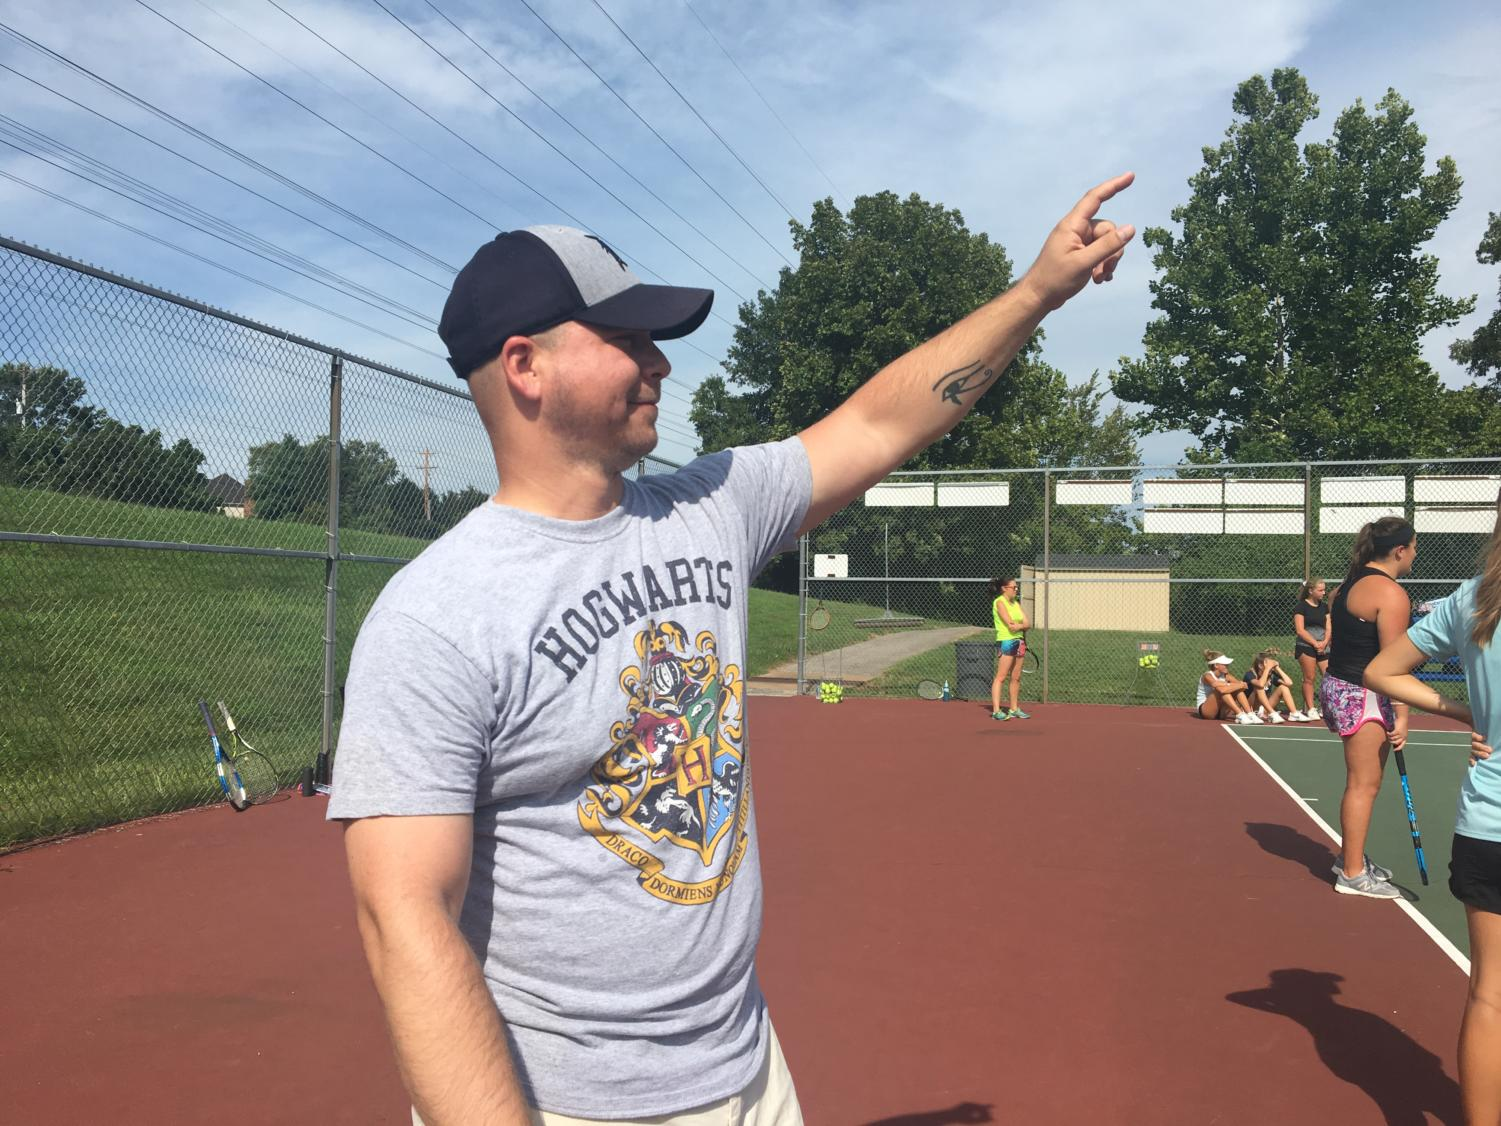 Joshua Hyde, history teacher, leads the j.v. girls tennis team in a series of drills prior to practice. He has become a co-coach of the girls' tennis team this year with Alex Nelle, history teacher.